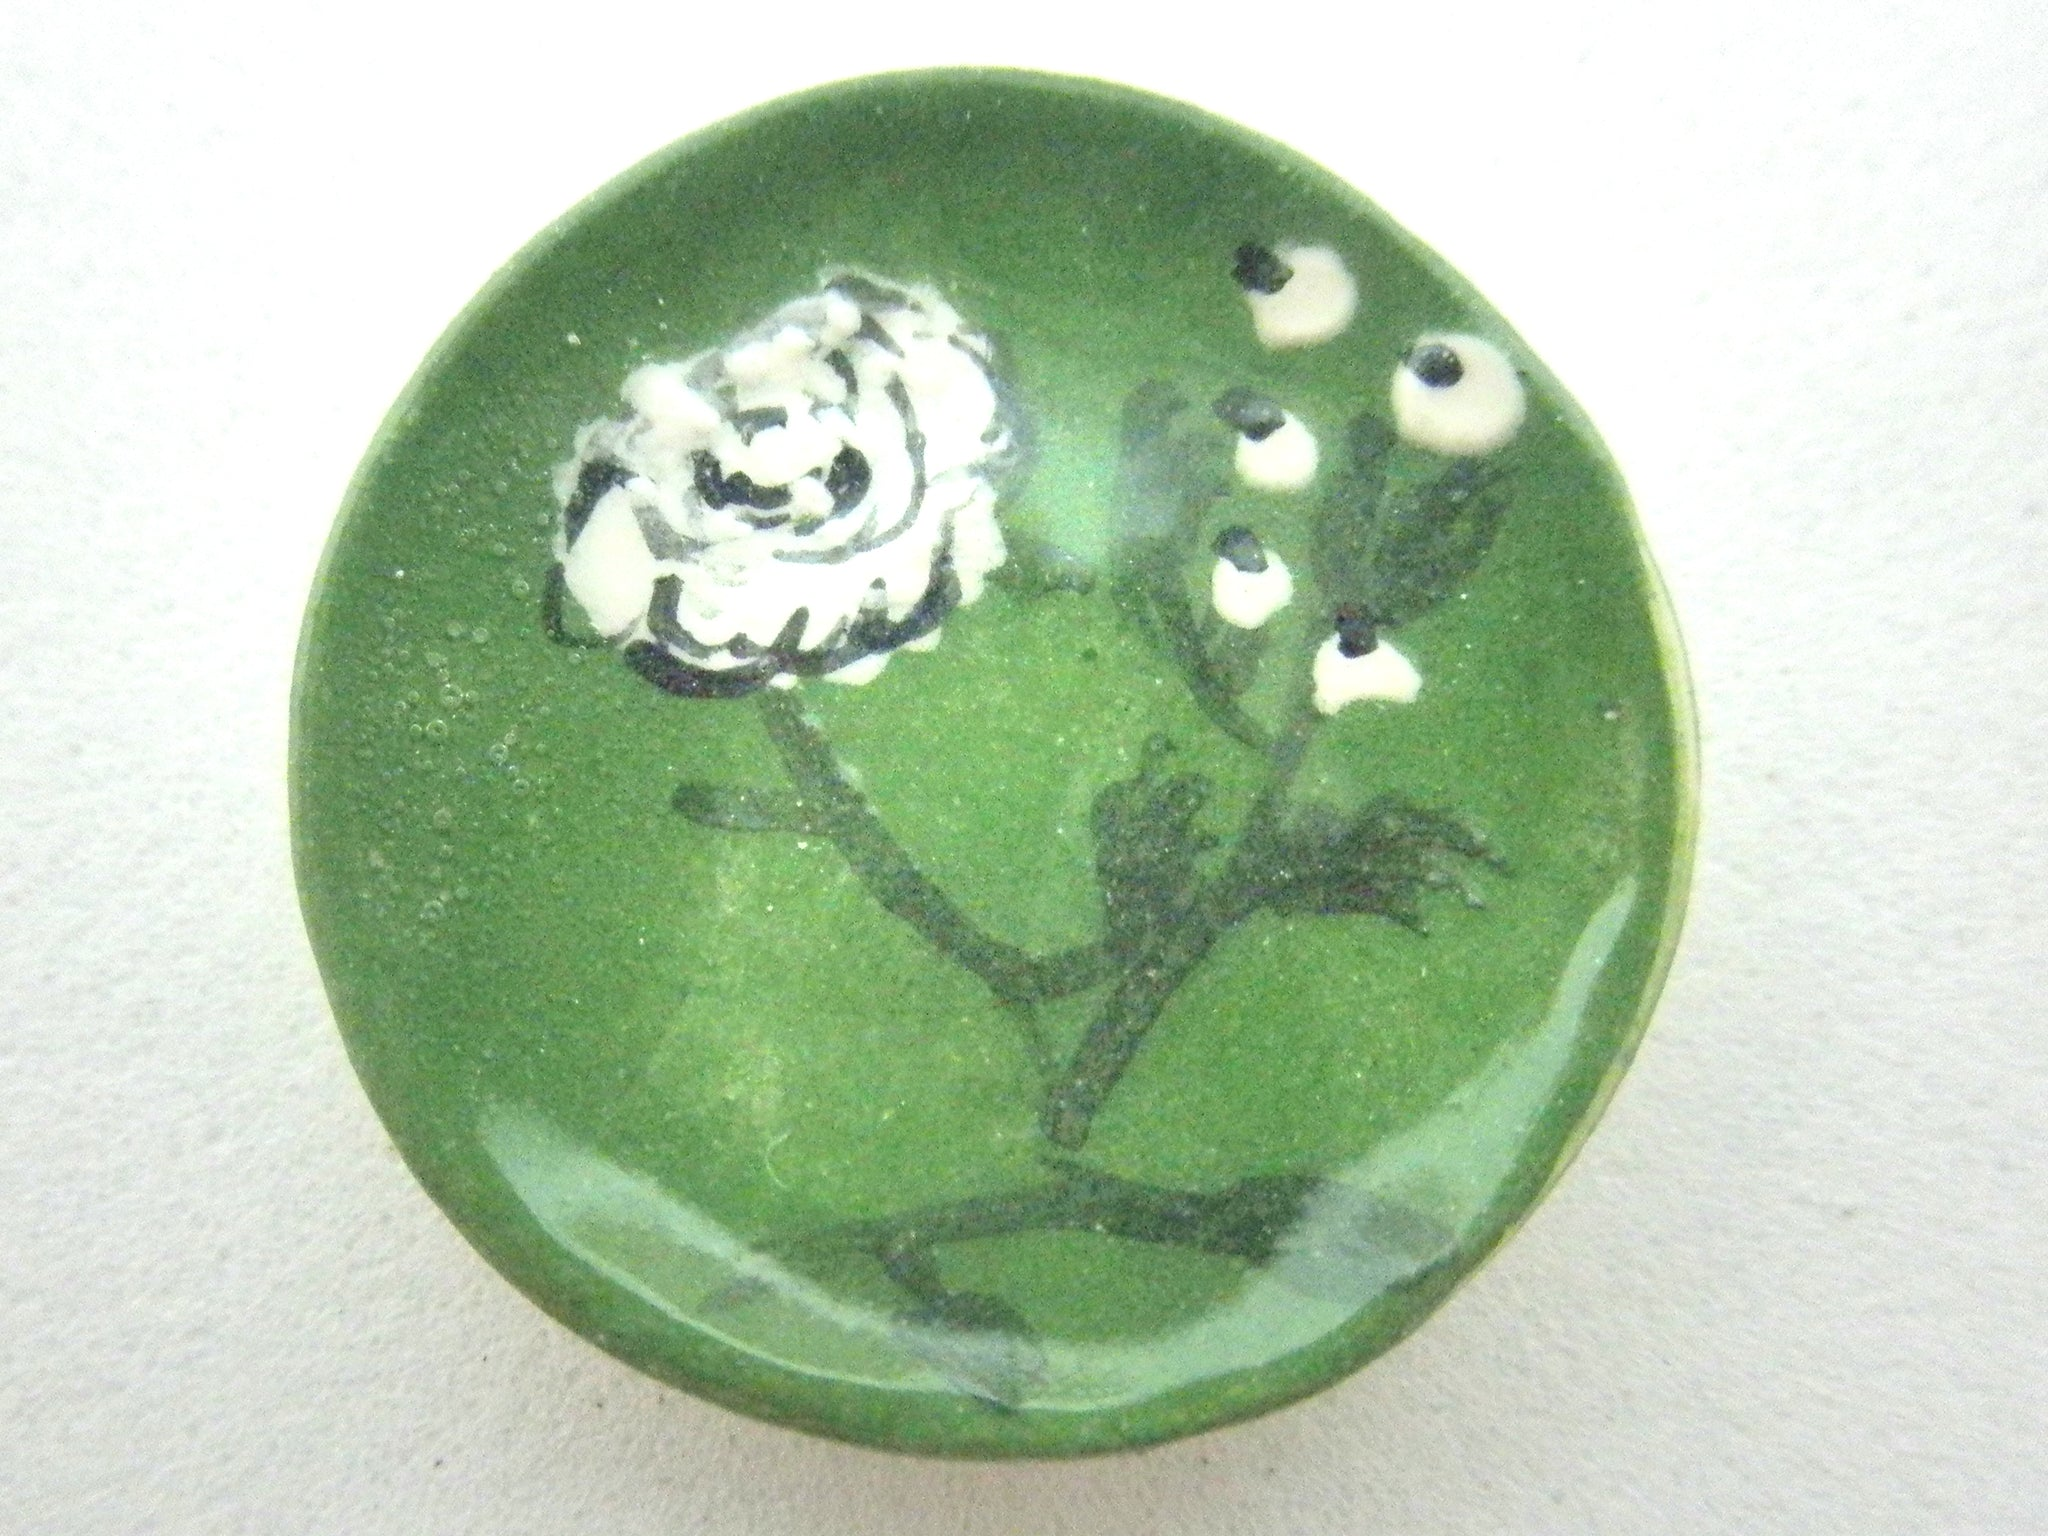 Miniature ceramic plate - peonies on green